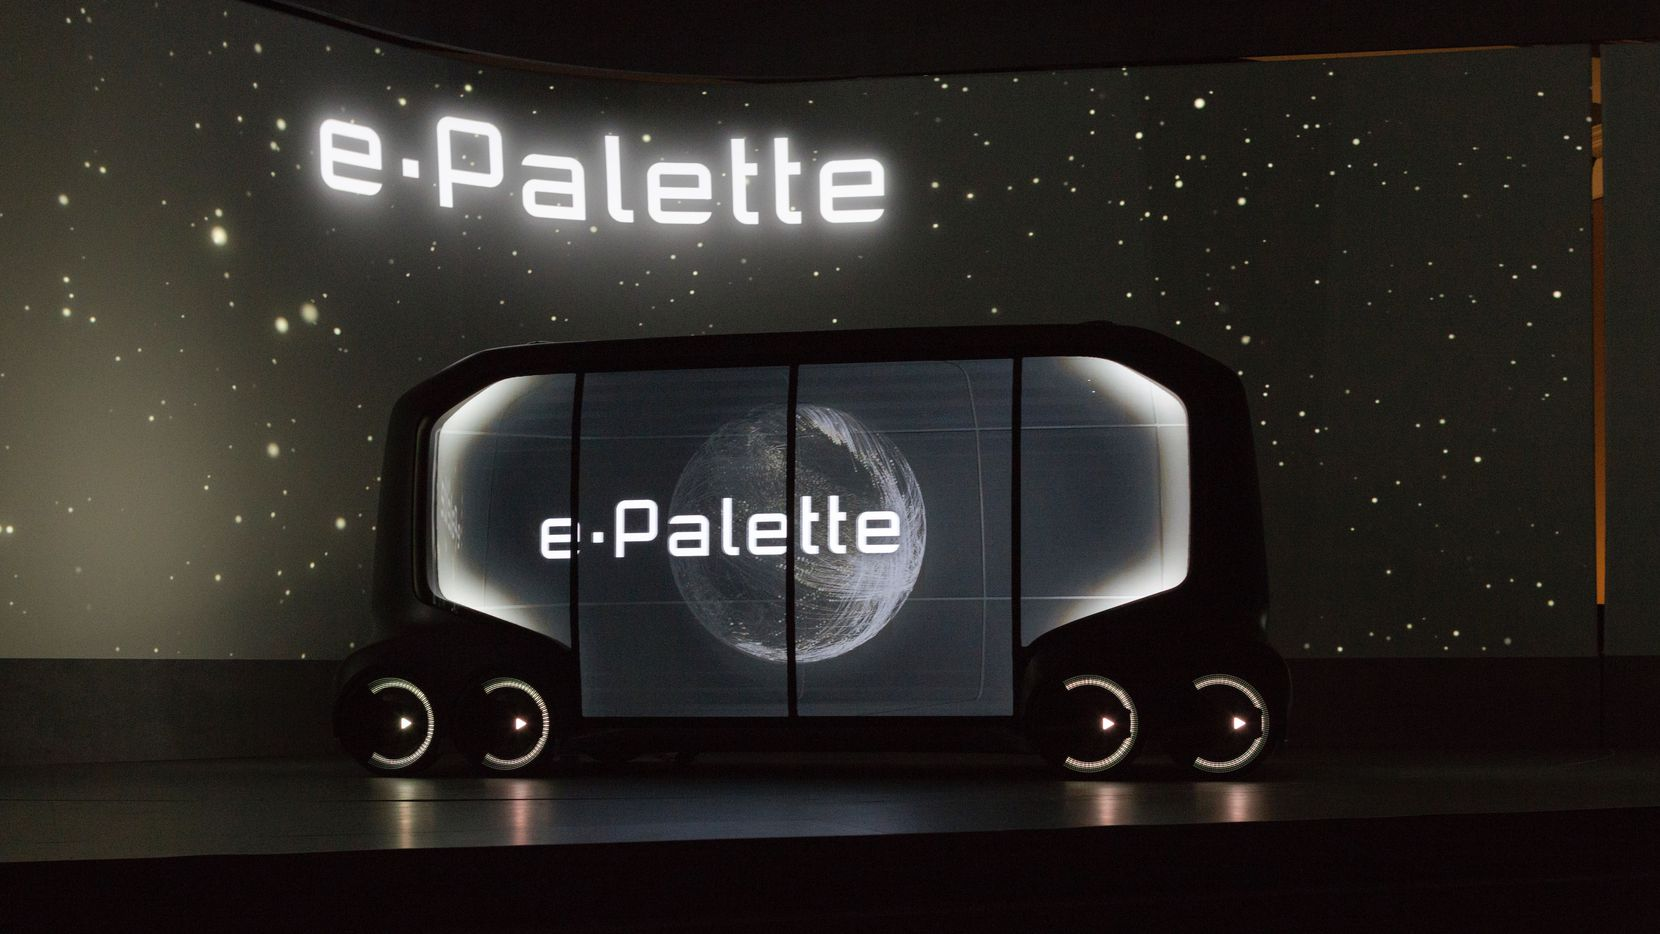 Toyota's concept vehicle, the e-Palette, debuted at this year's Consumer Electronics Show in Las Vegas.